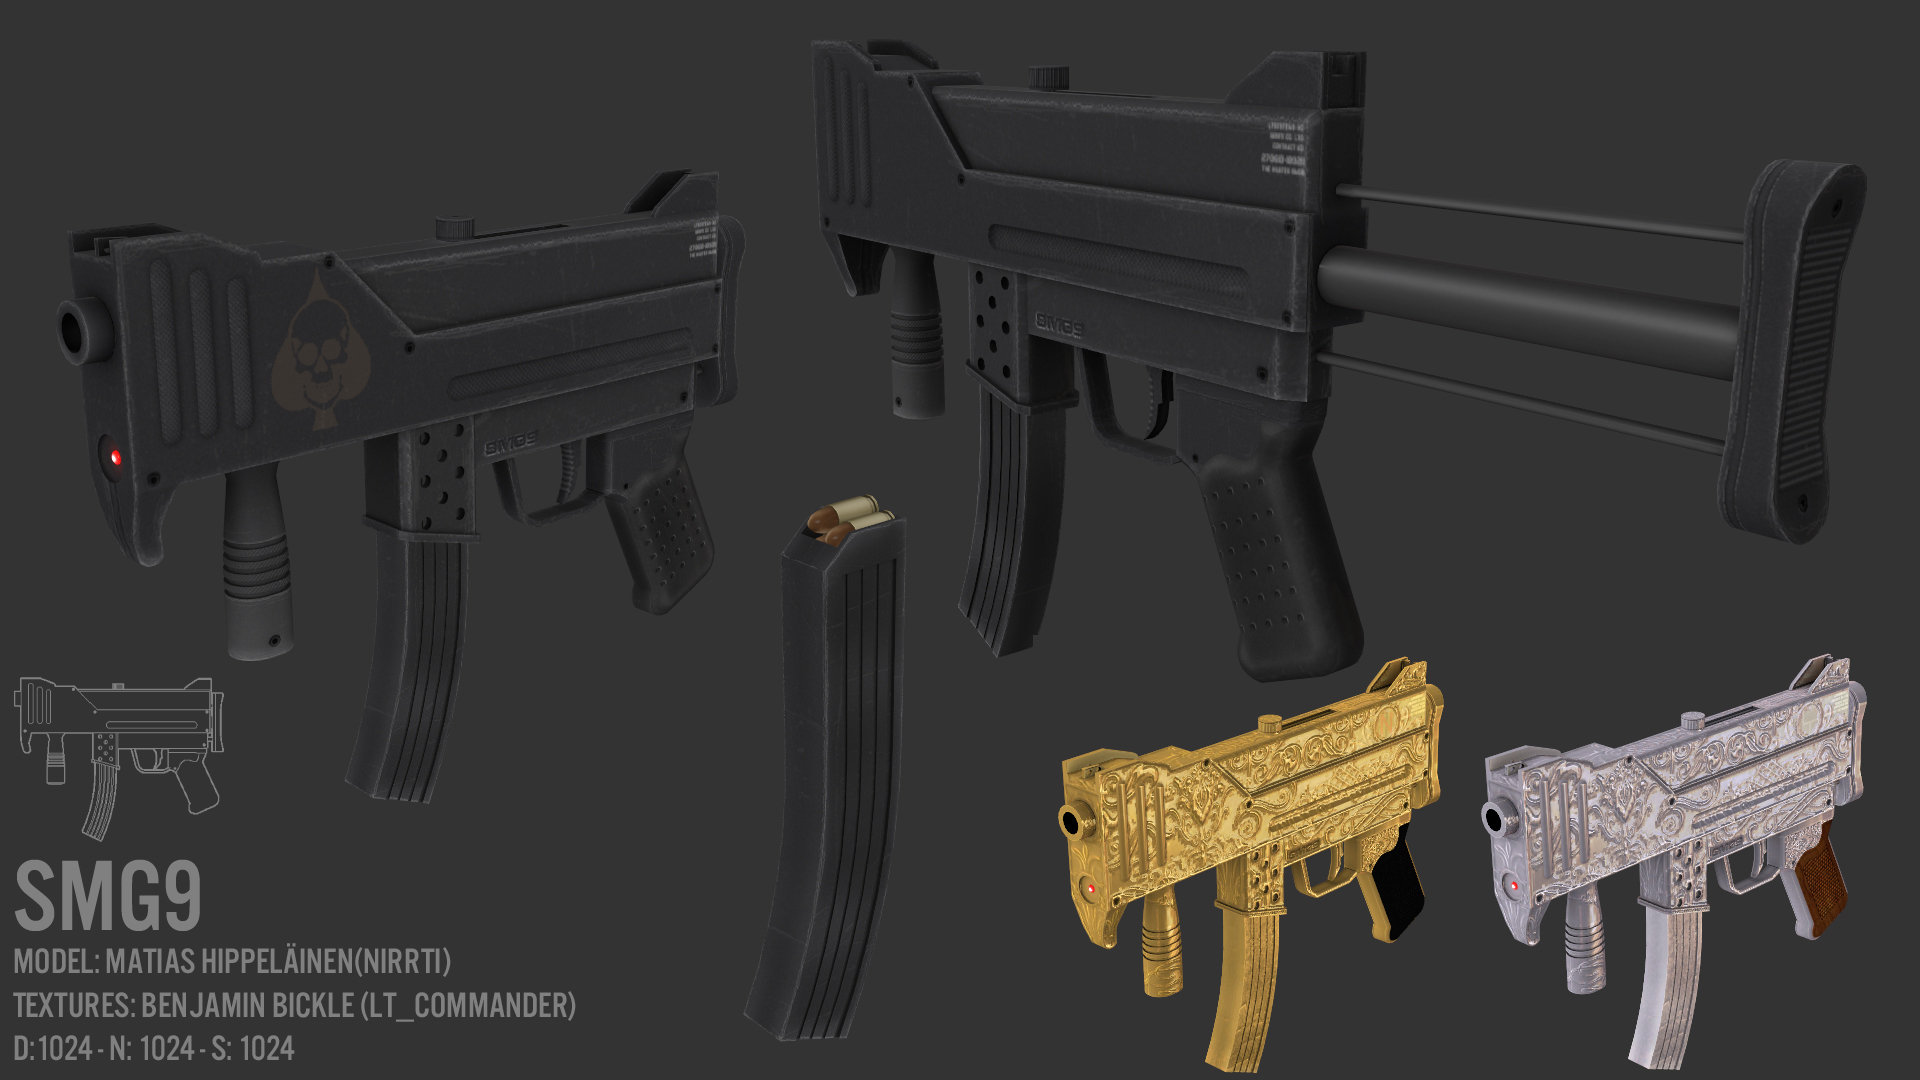 Ben bickle smg9